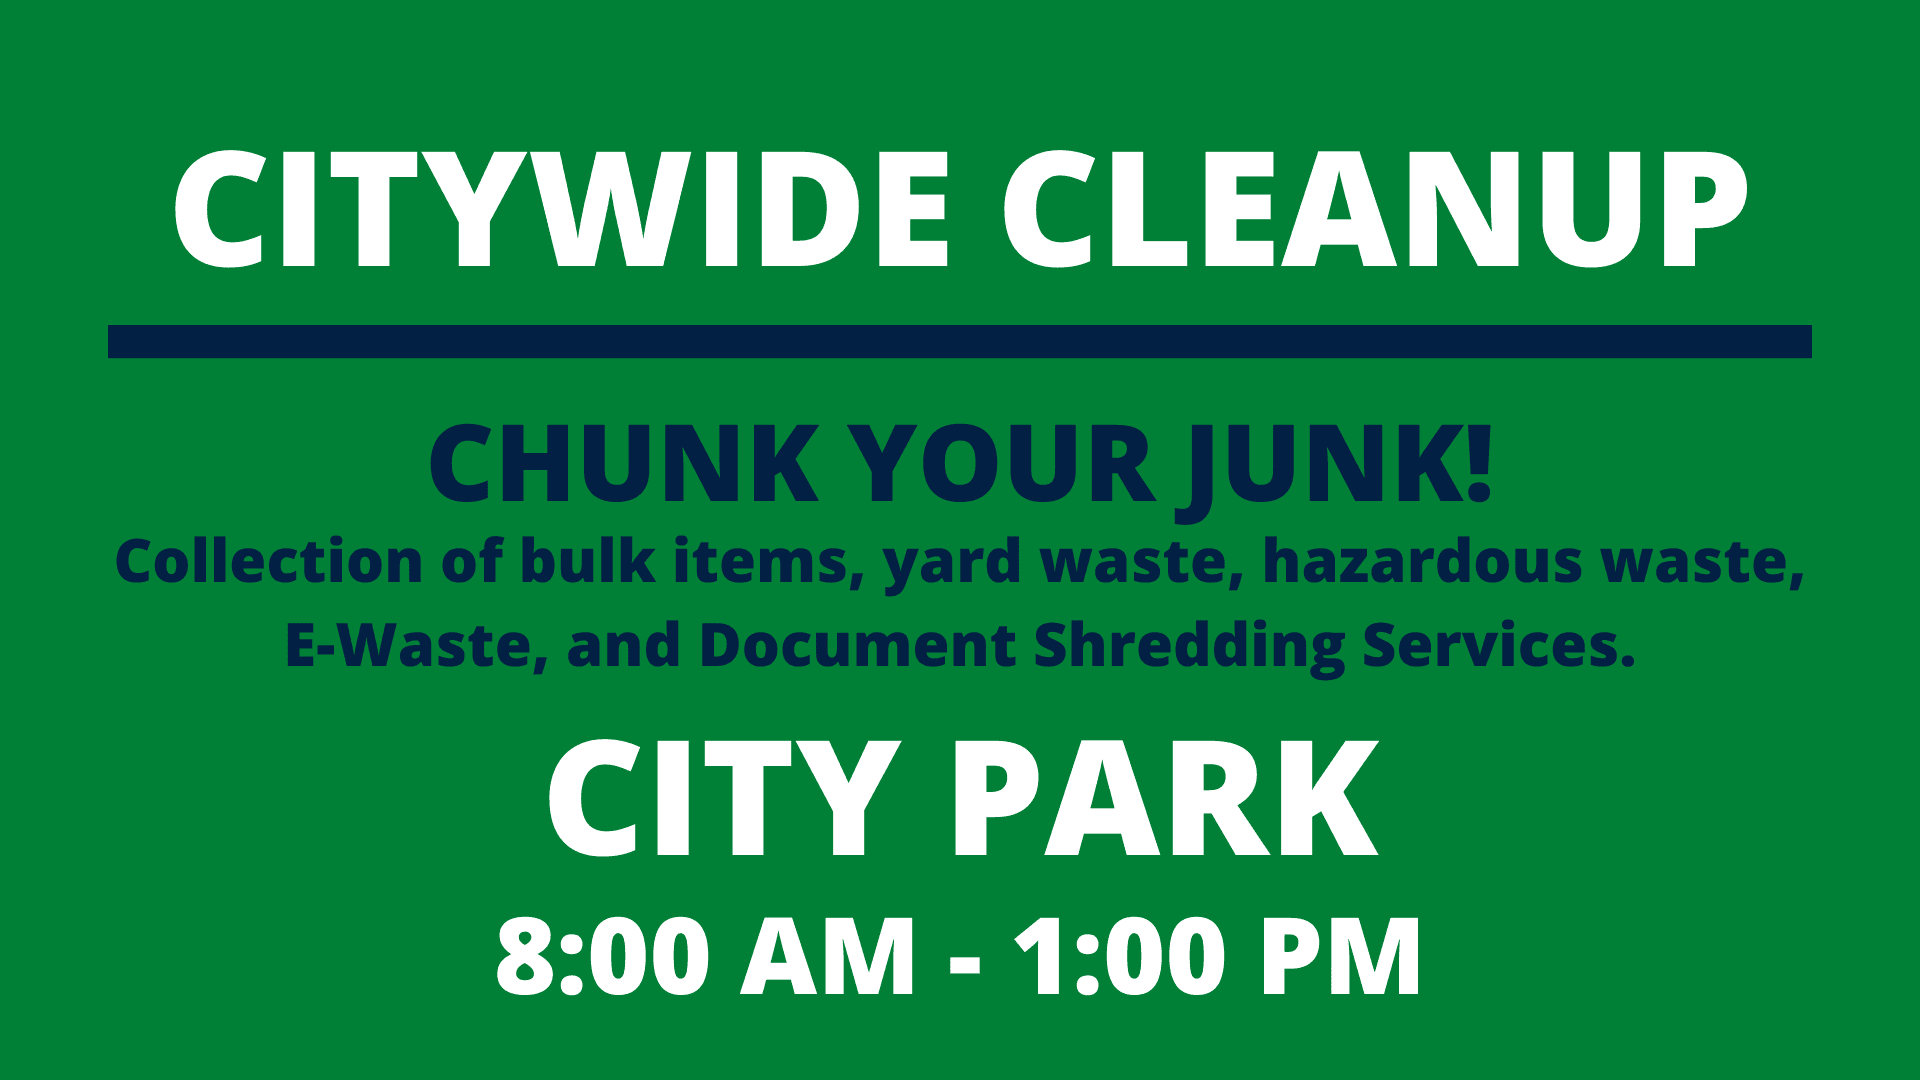 Citywide Cleanup